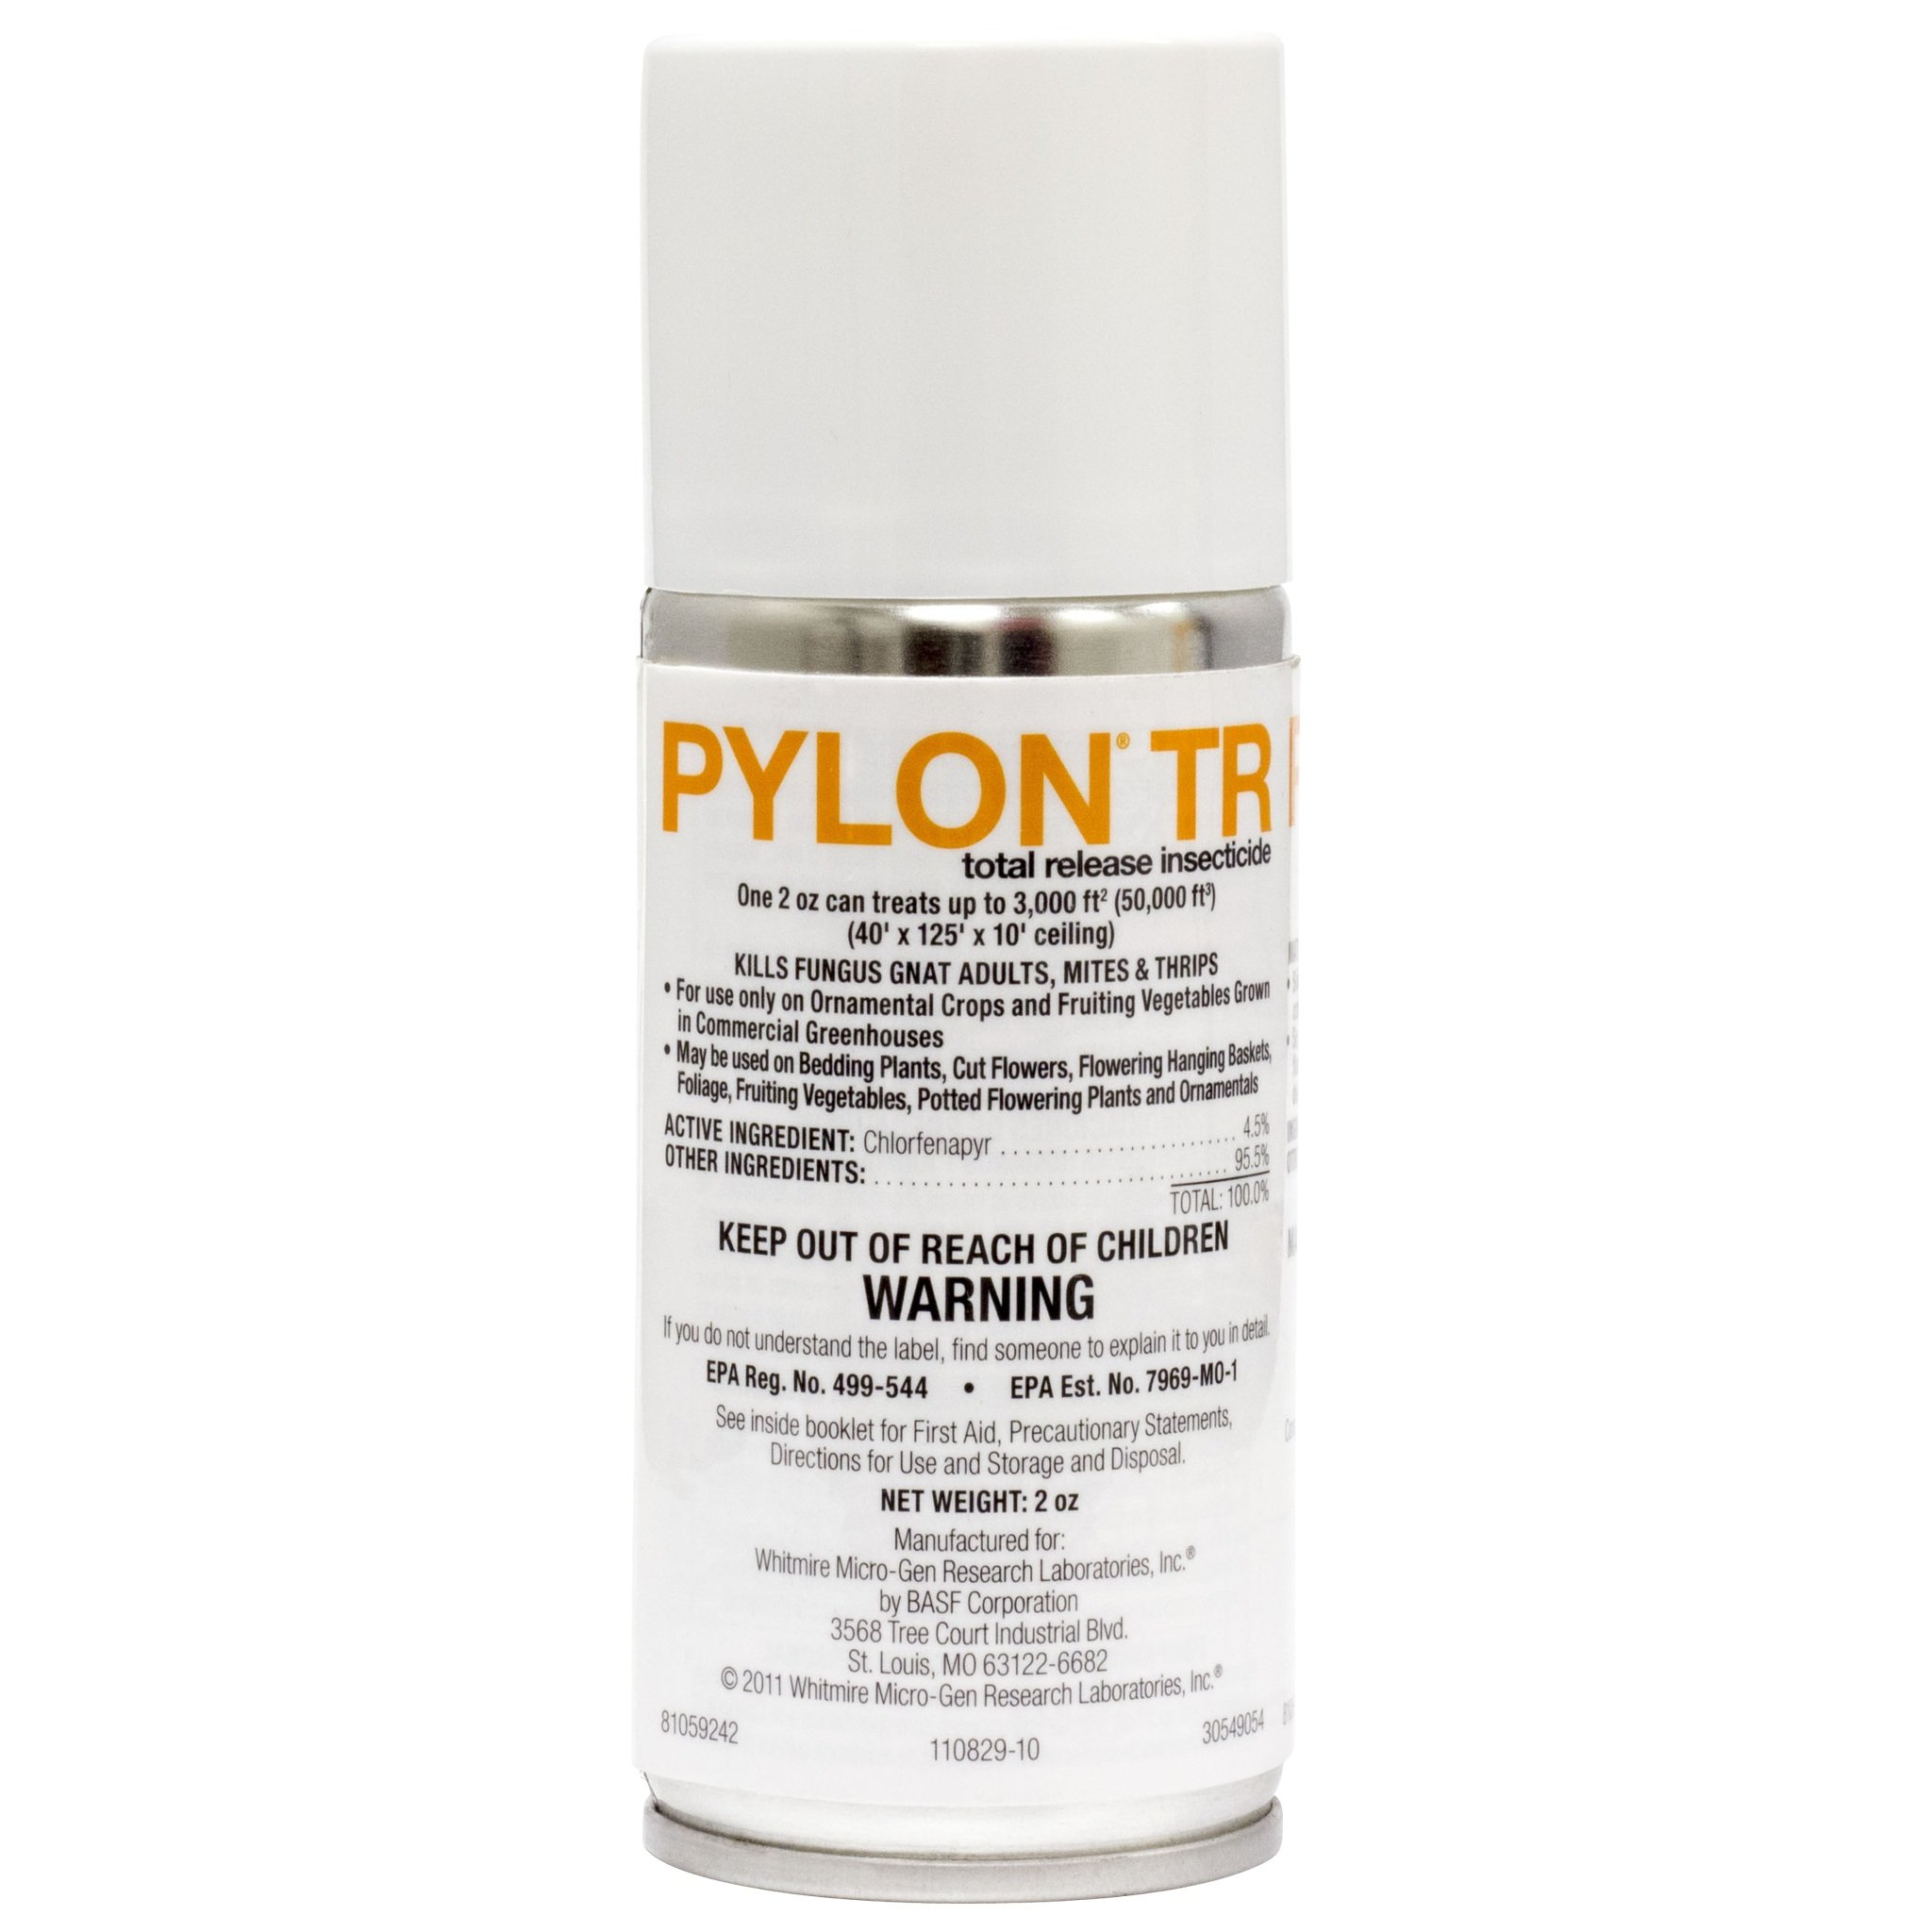 Pylon TR Total Release Insecticide (2) 2 oz. Cans by Pylon